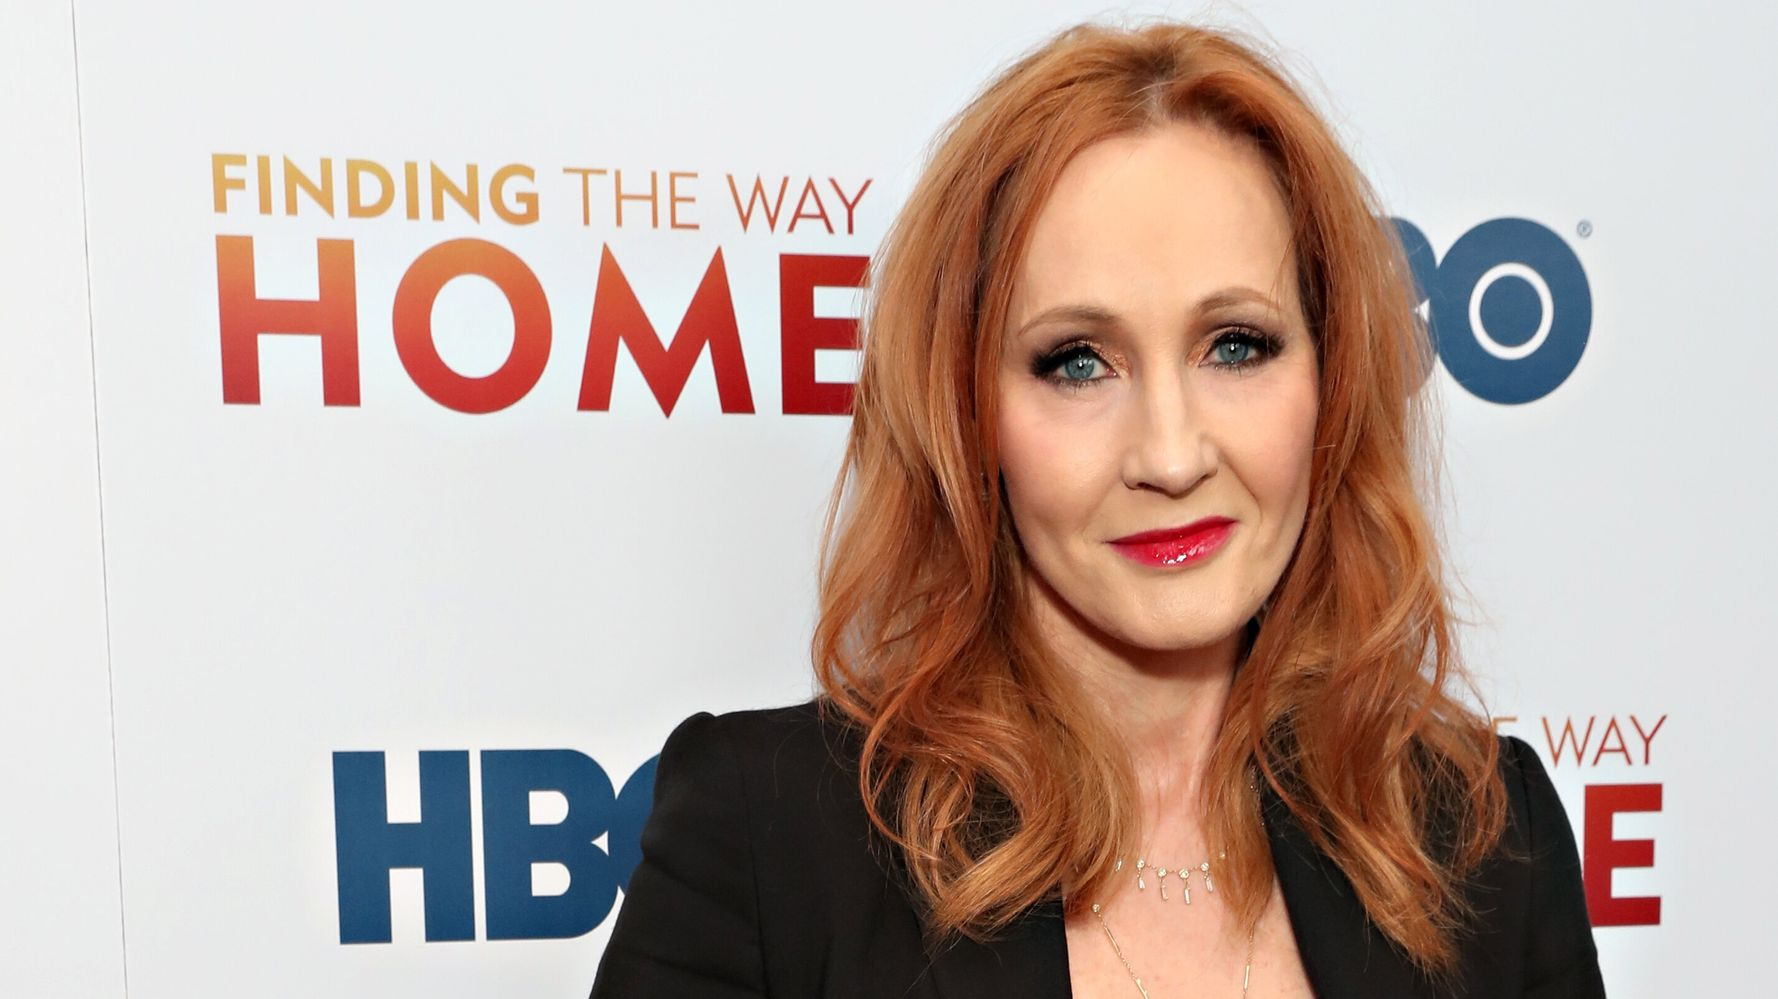 JK Rowling Is Releasing An Unpublished Story She Wrote 10 Years Ago